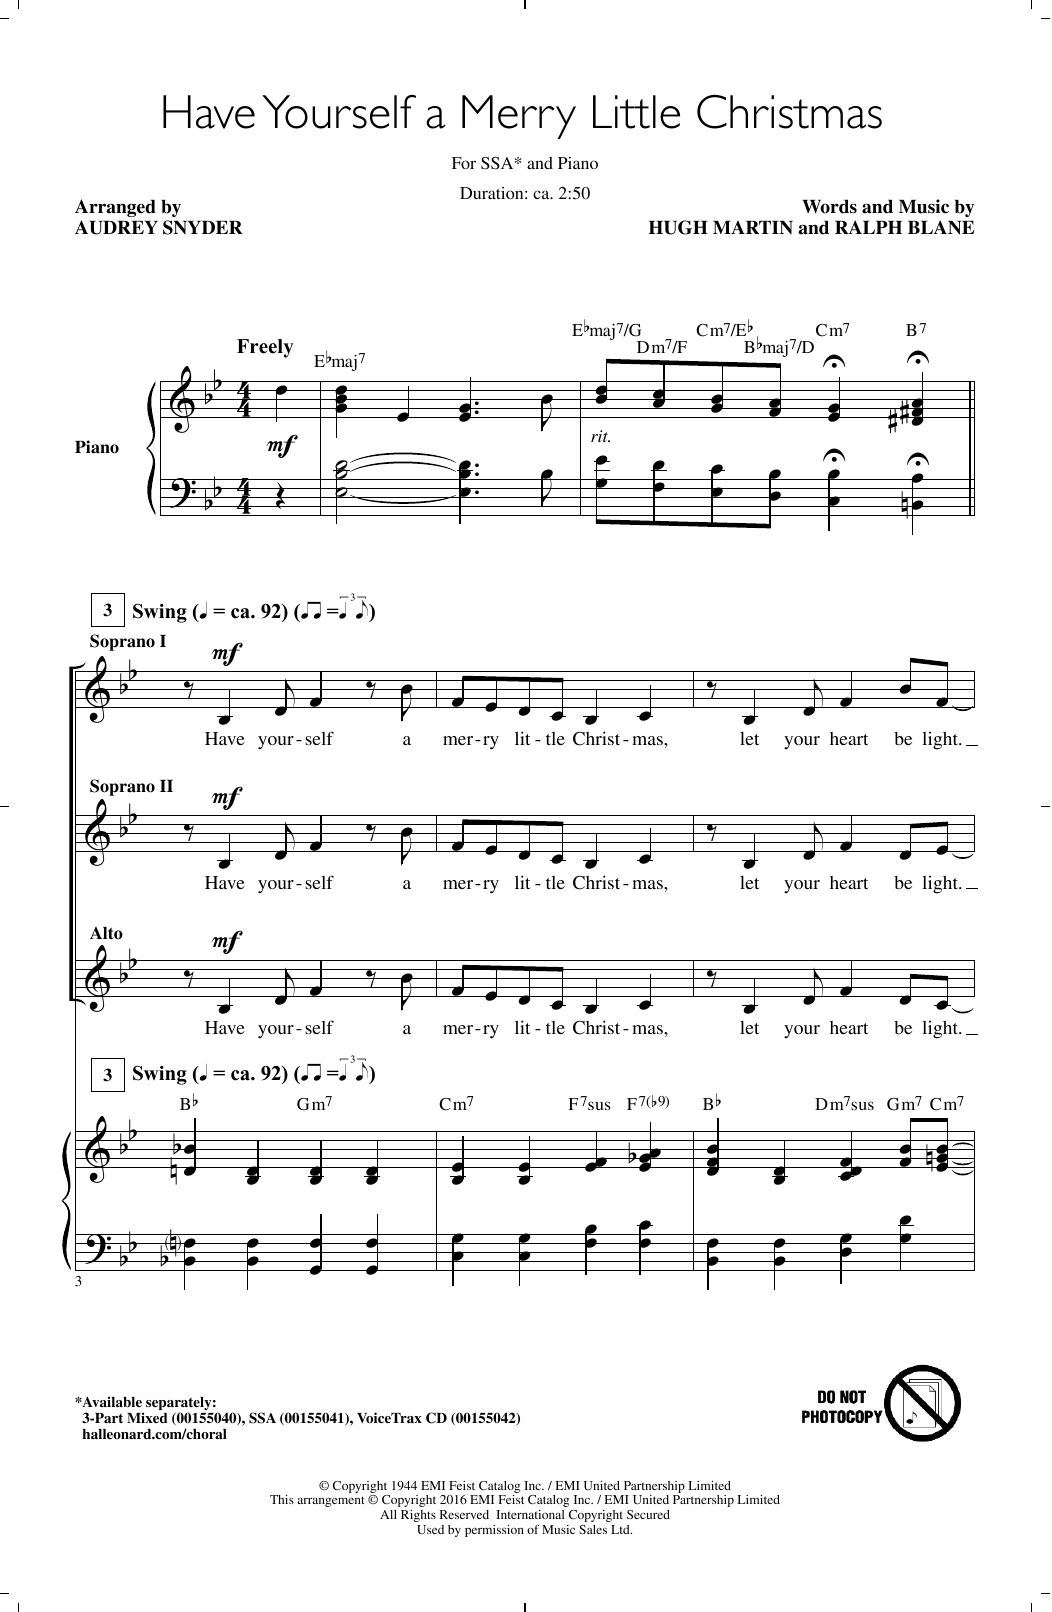 have yourself a merry little christmas sheet music - Have Yourself A Merry Little Christmas Lyrics